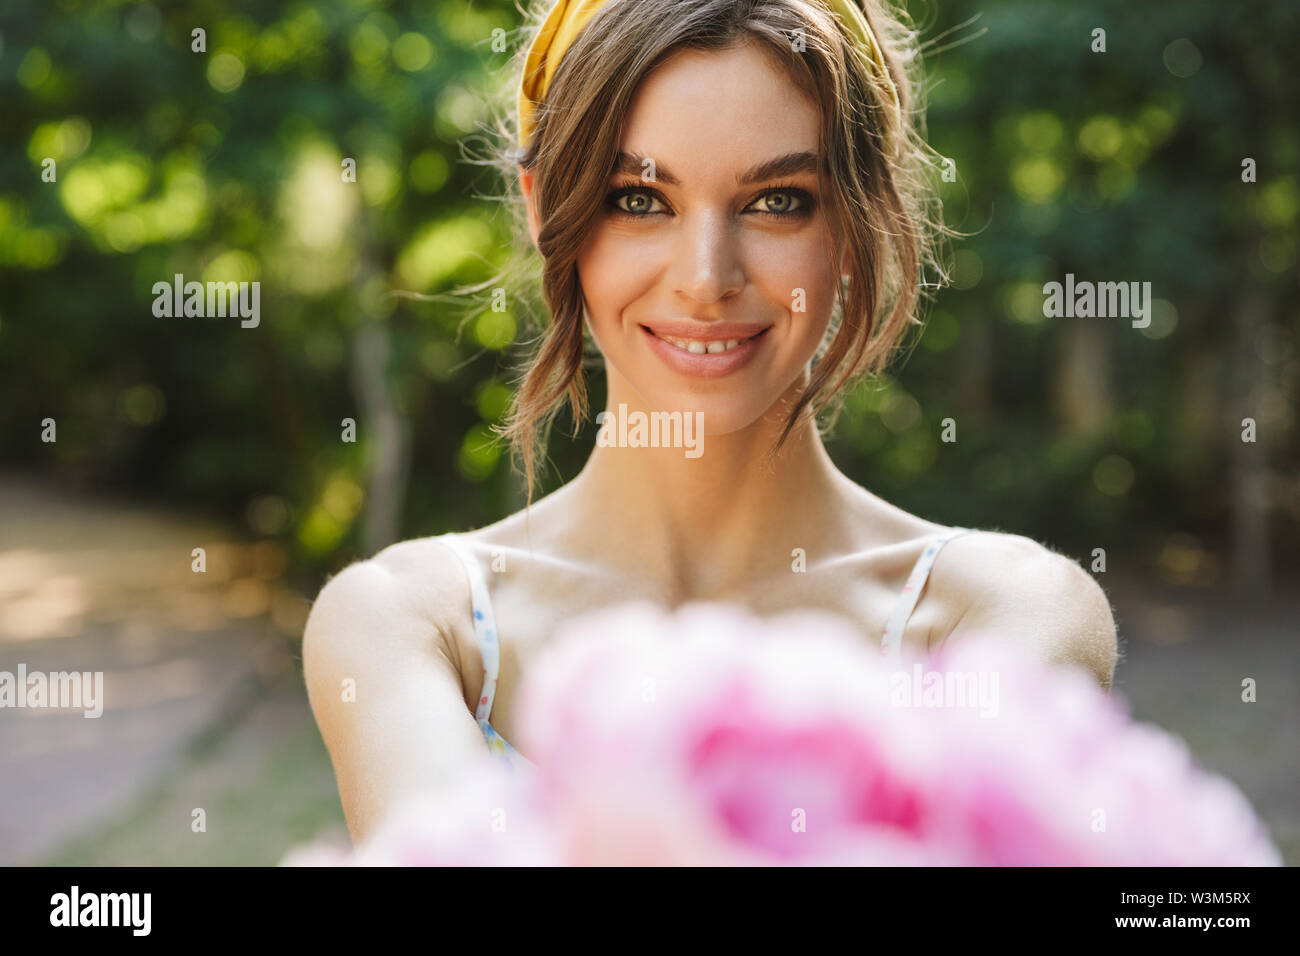 Image of a cheery happy positive beautiful young pretty woman in green park give you pink flowers. - Stock Image